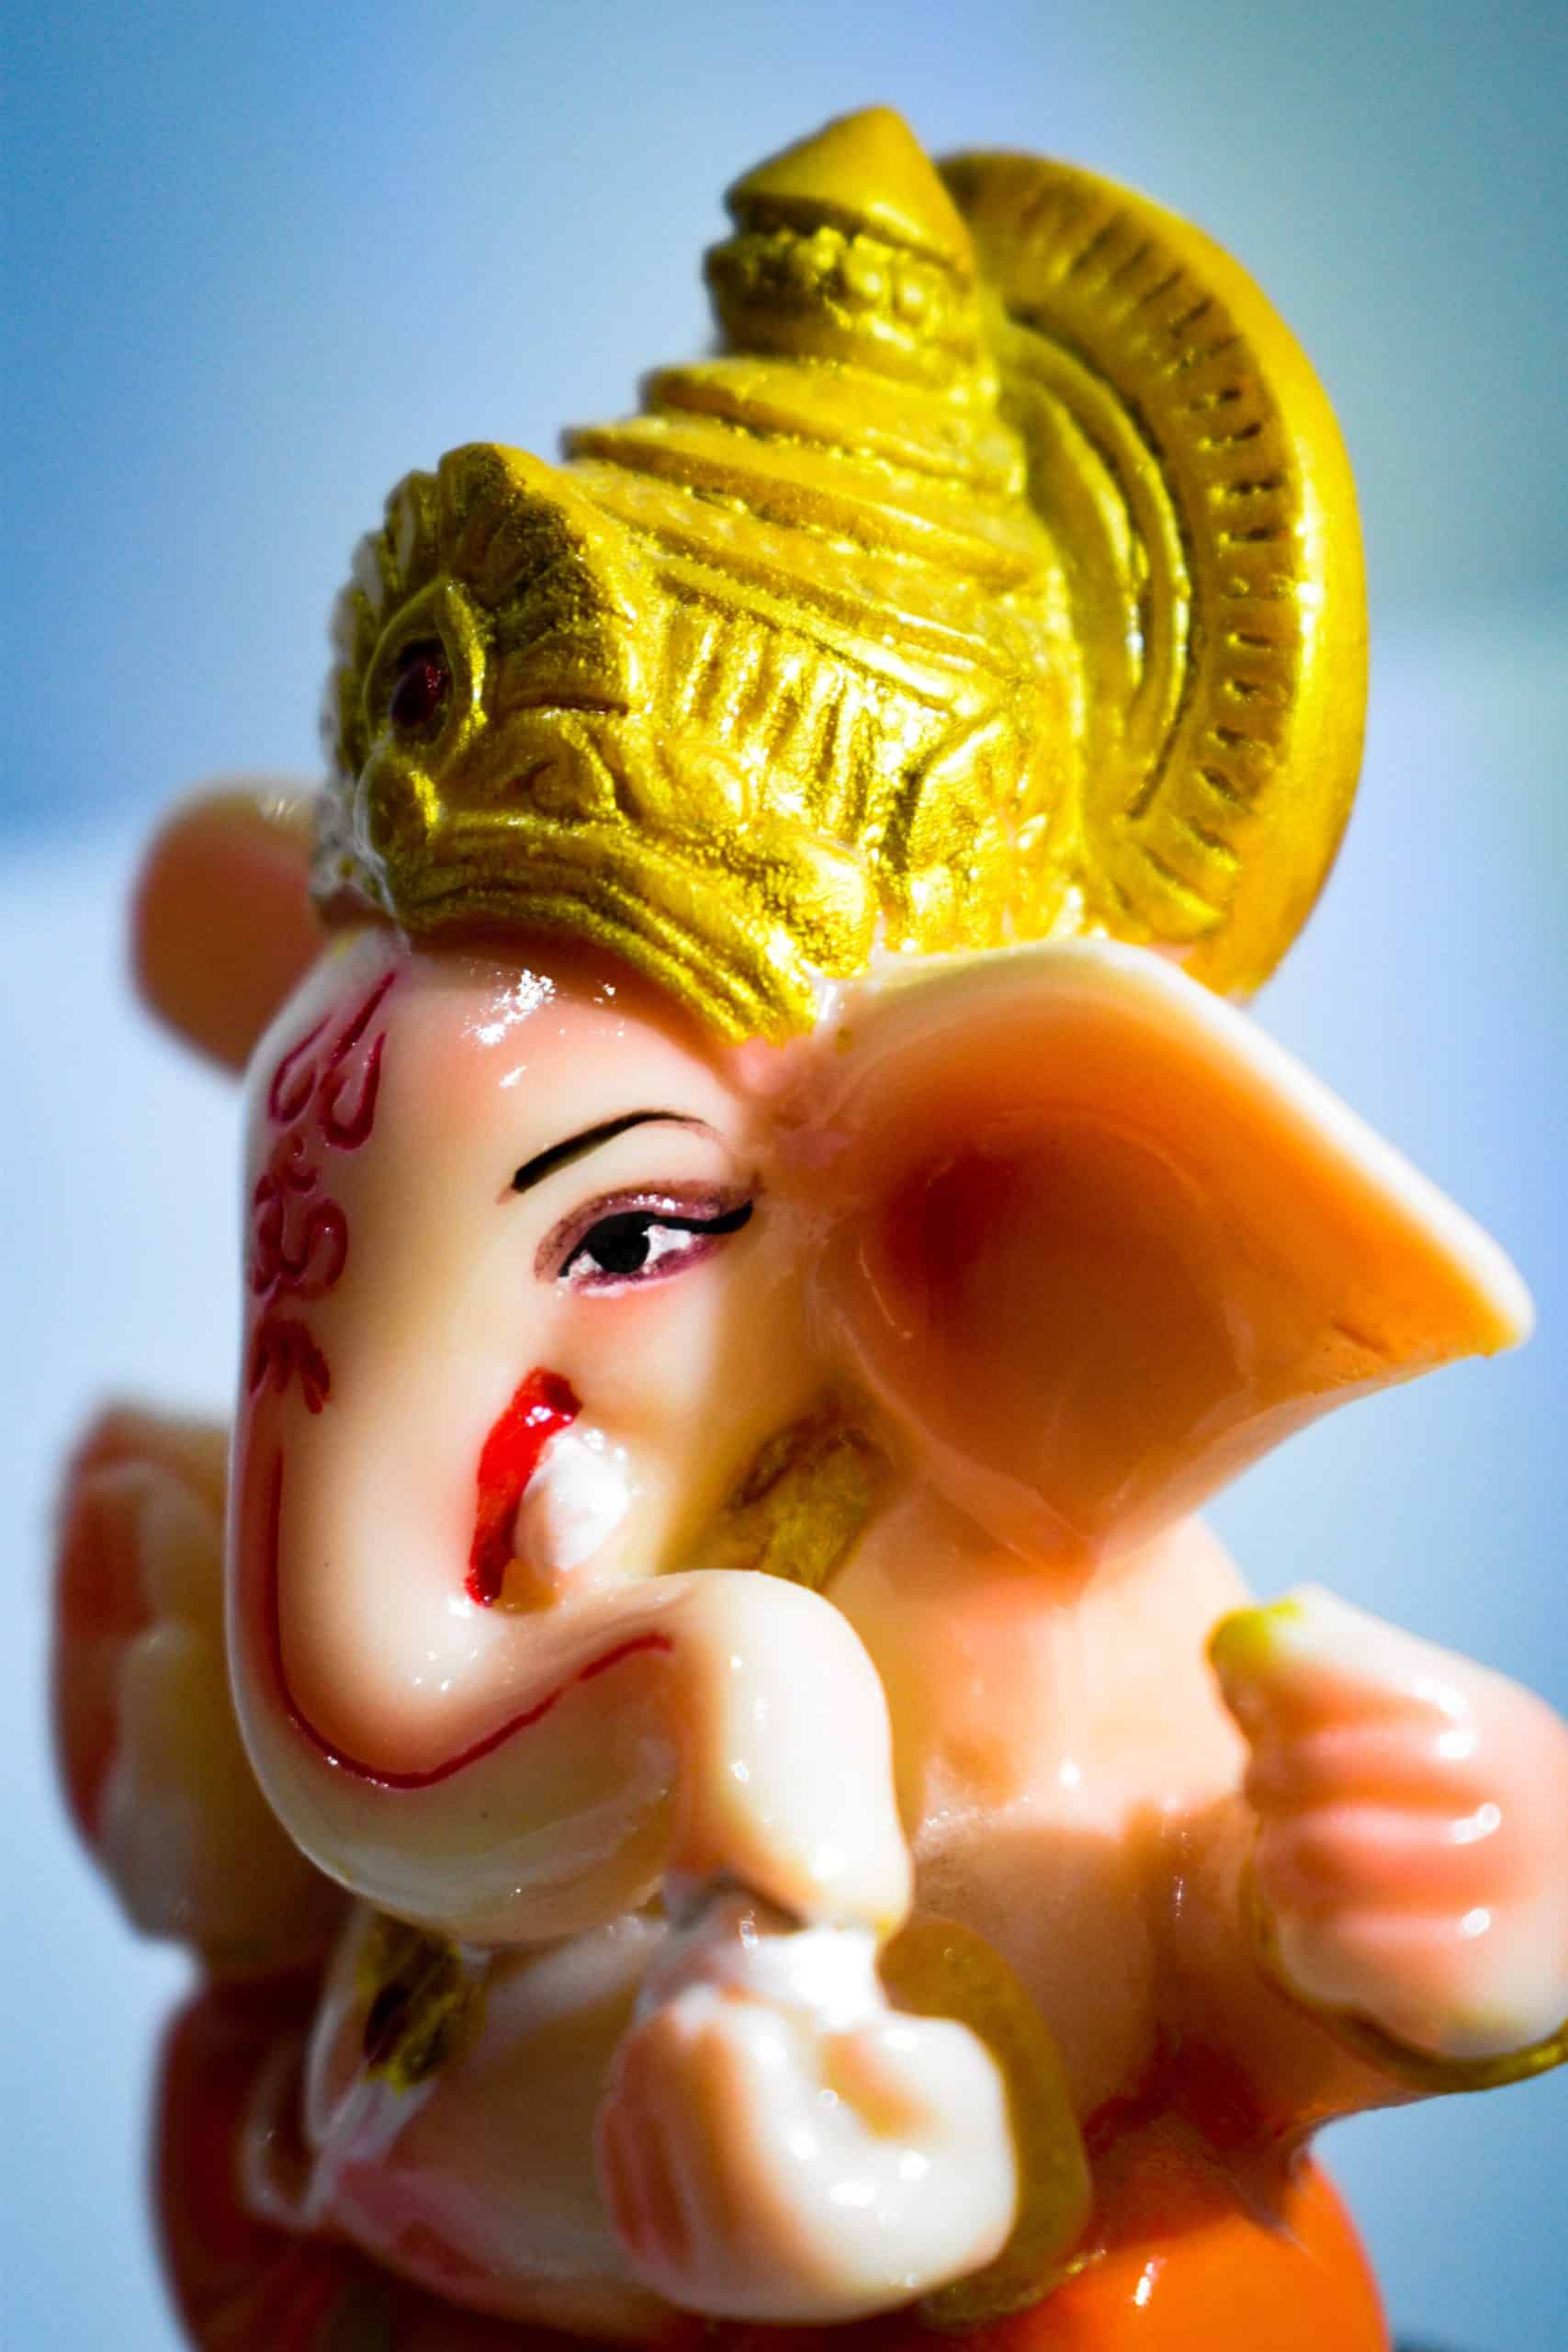 How to Find Correct Types of Ganesh Idols for Gifting (and Home)